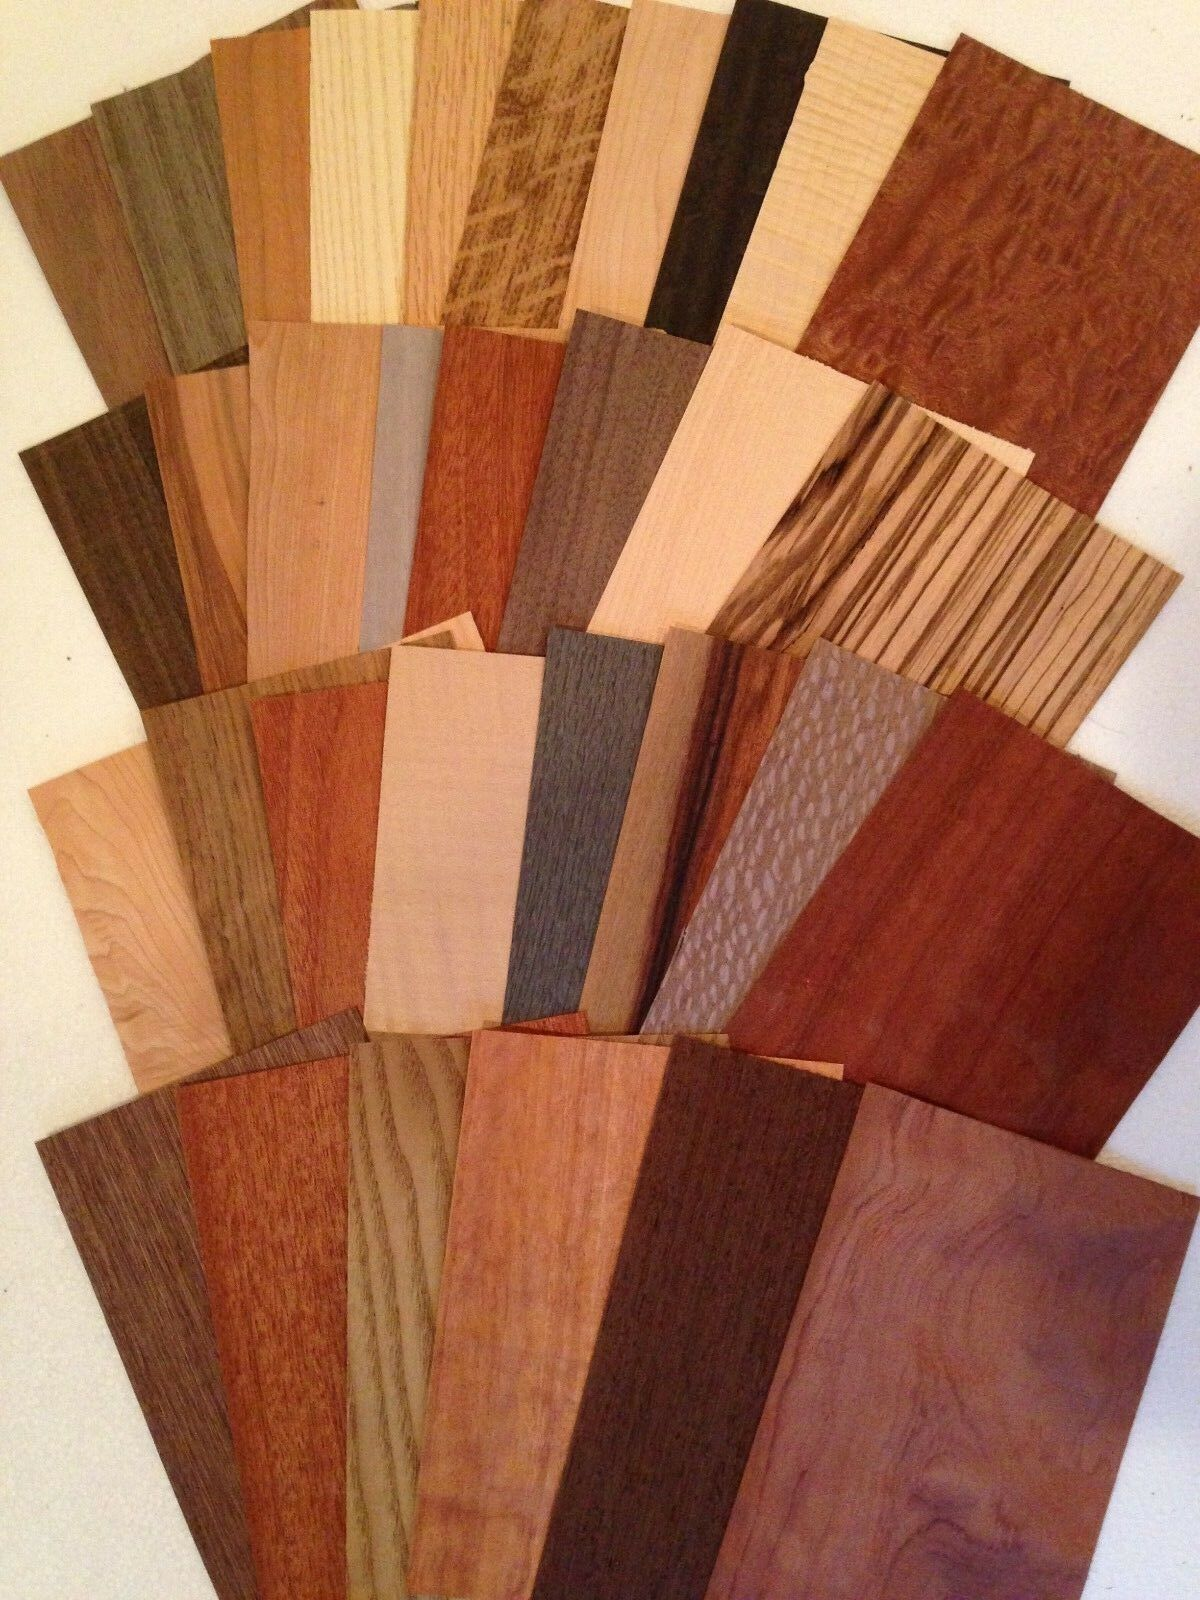 Wood Veneer variety pieces pack 20 square feet Artist craft